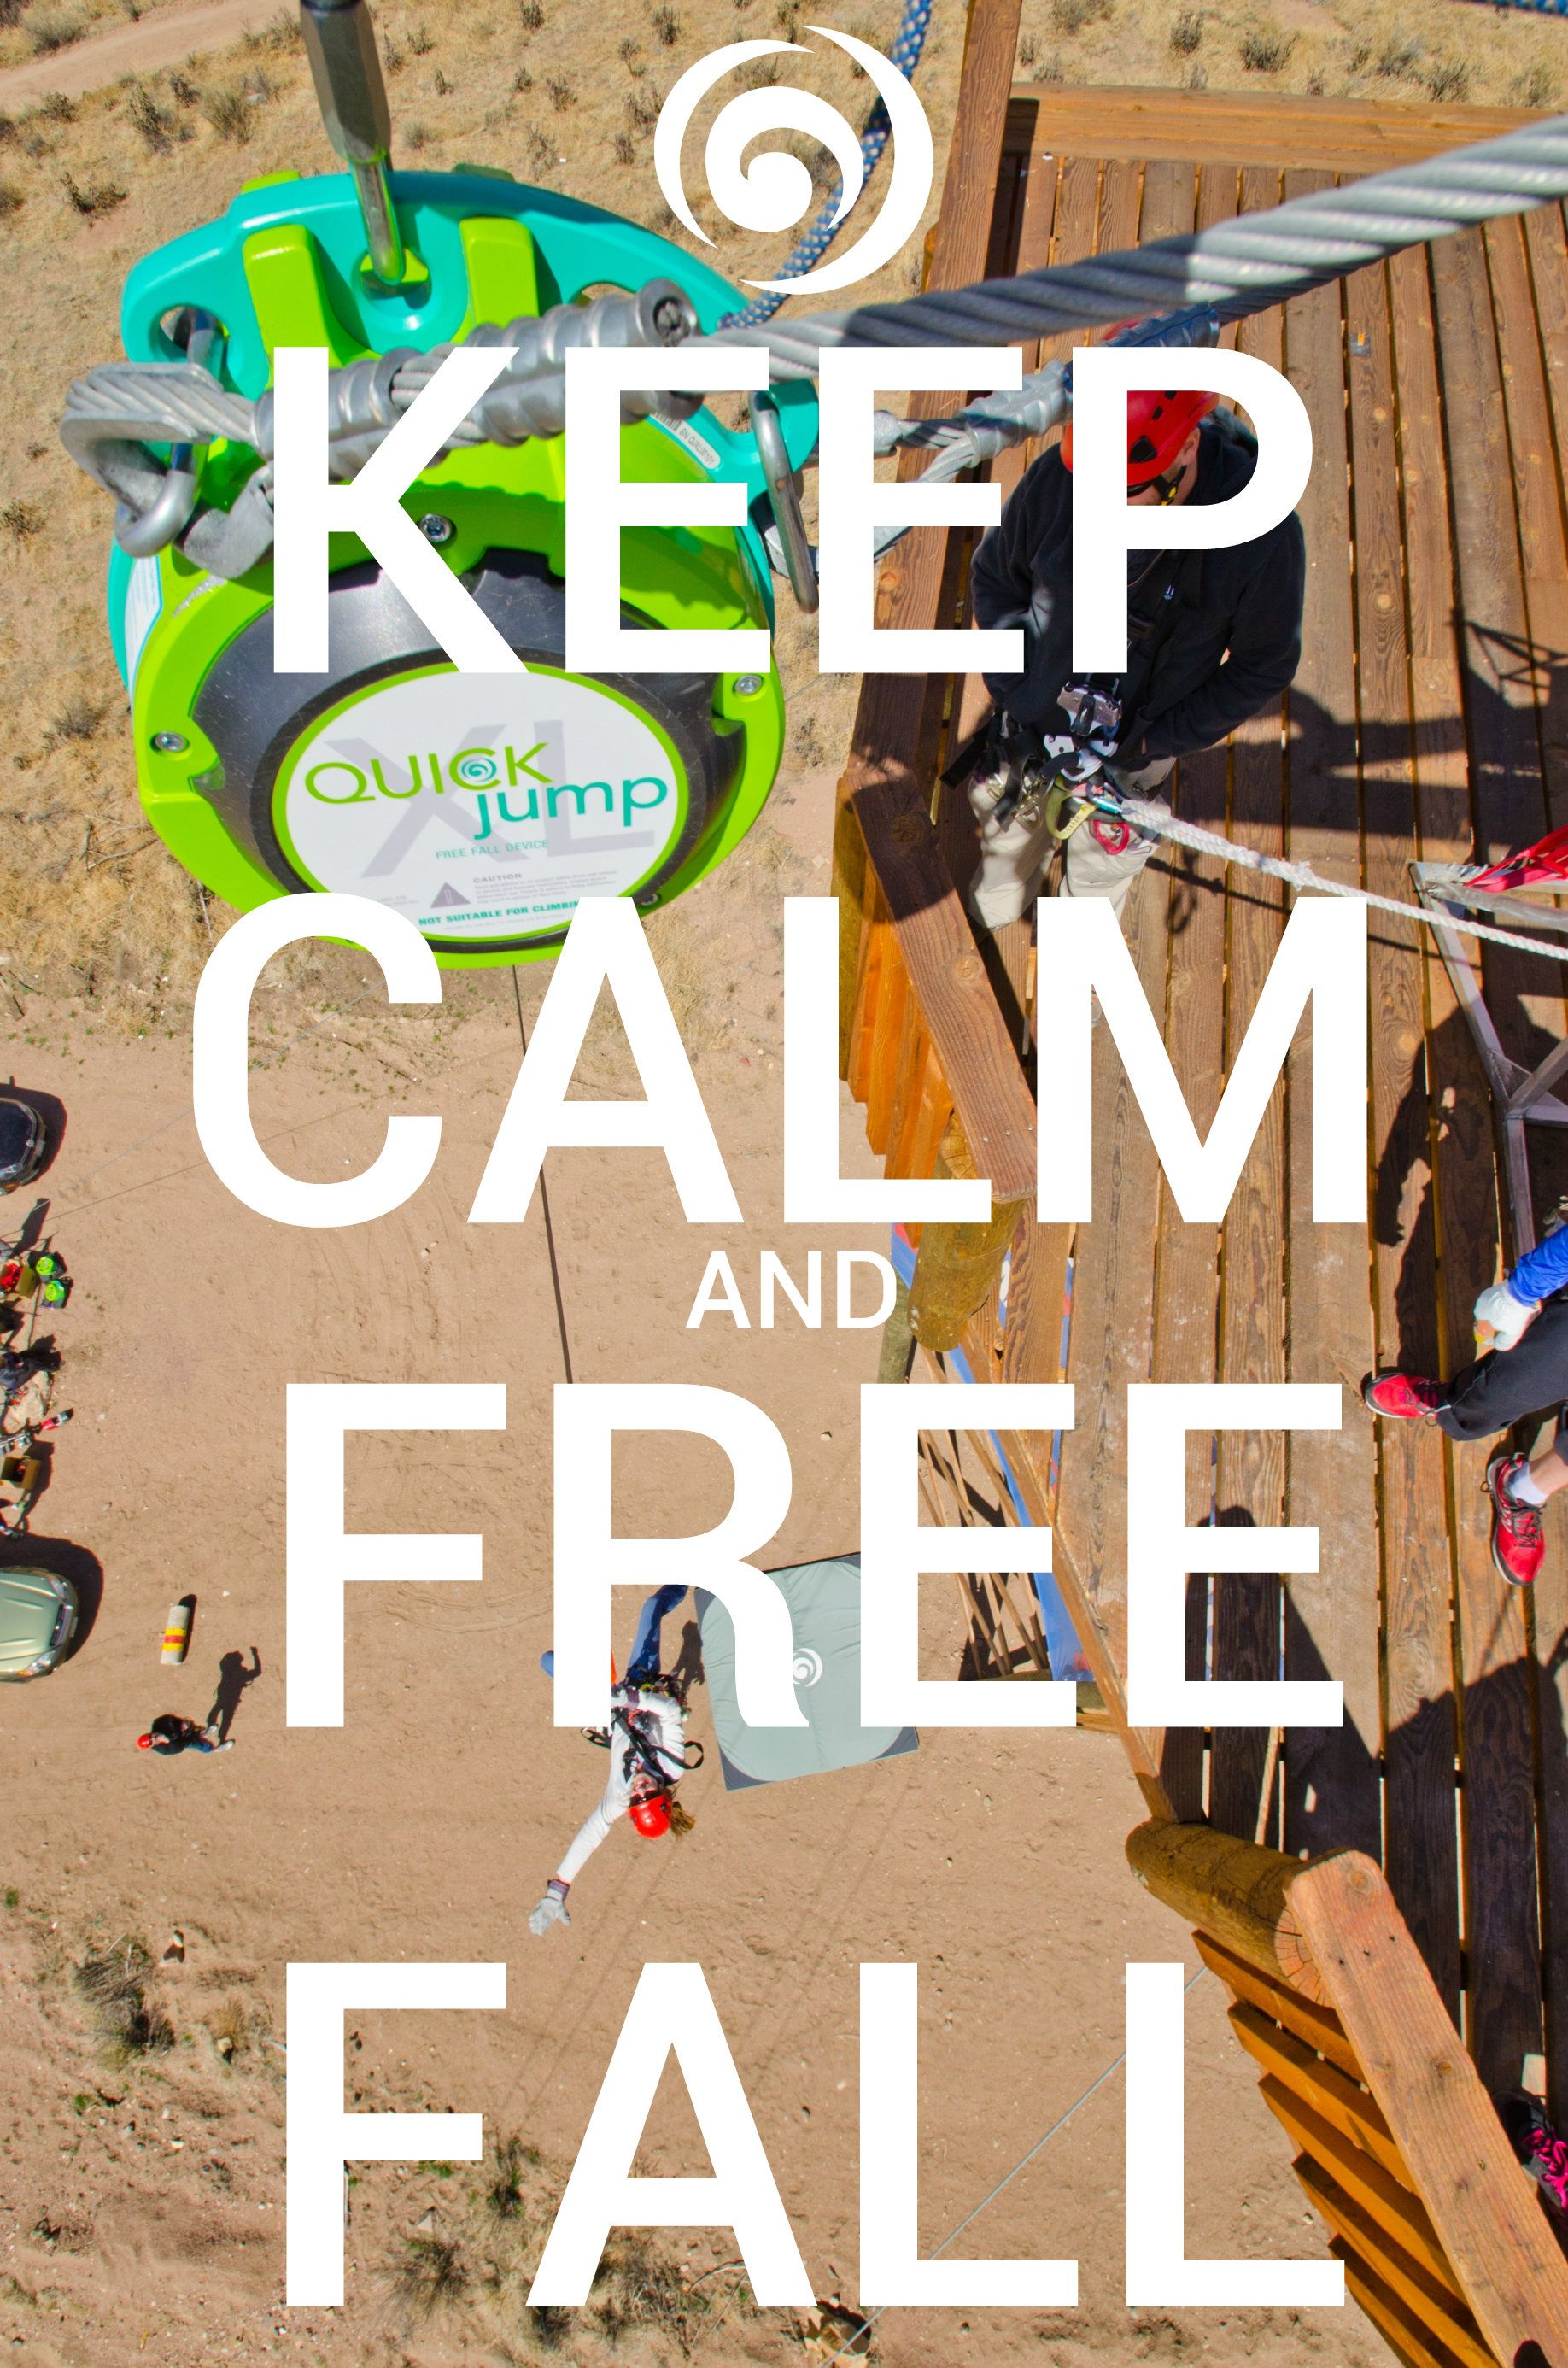 Keep Calm And Free Fall Quickjump Freefalldevice Freefalling Freefall Keepcalm Headrushtech Adventure Quotes Free Falling Adventure Park